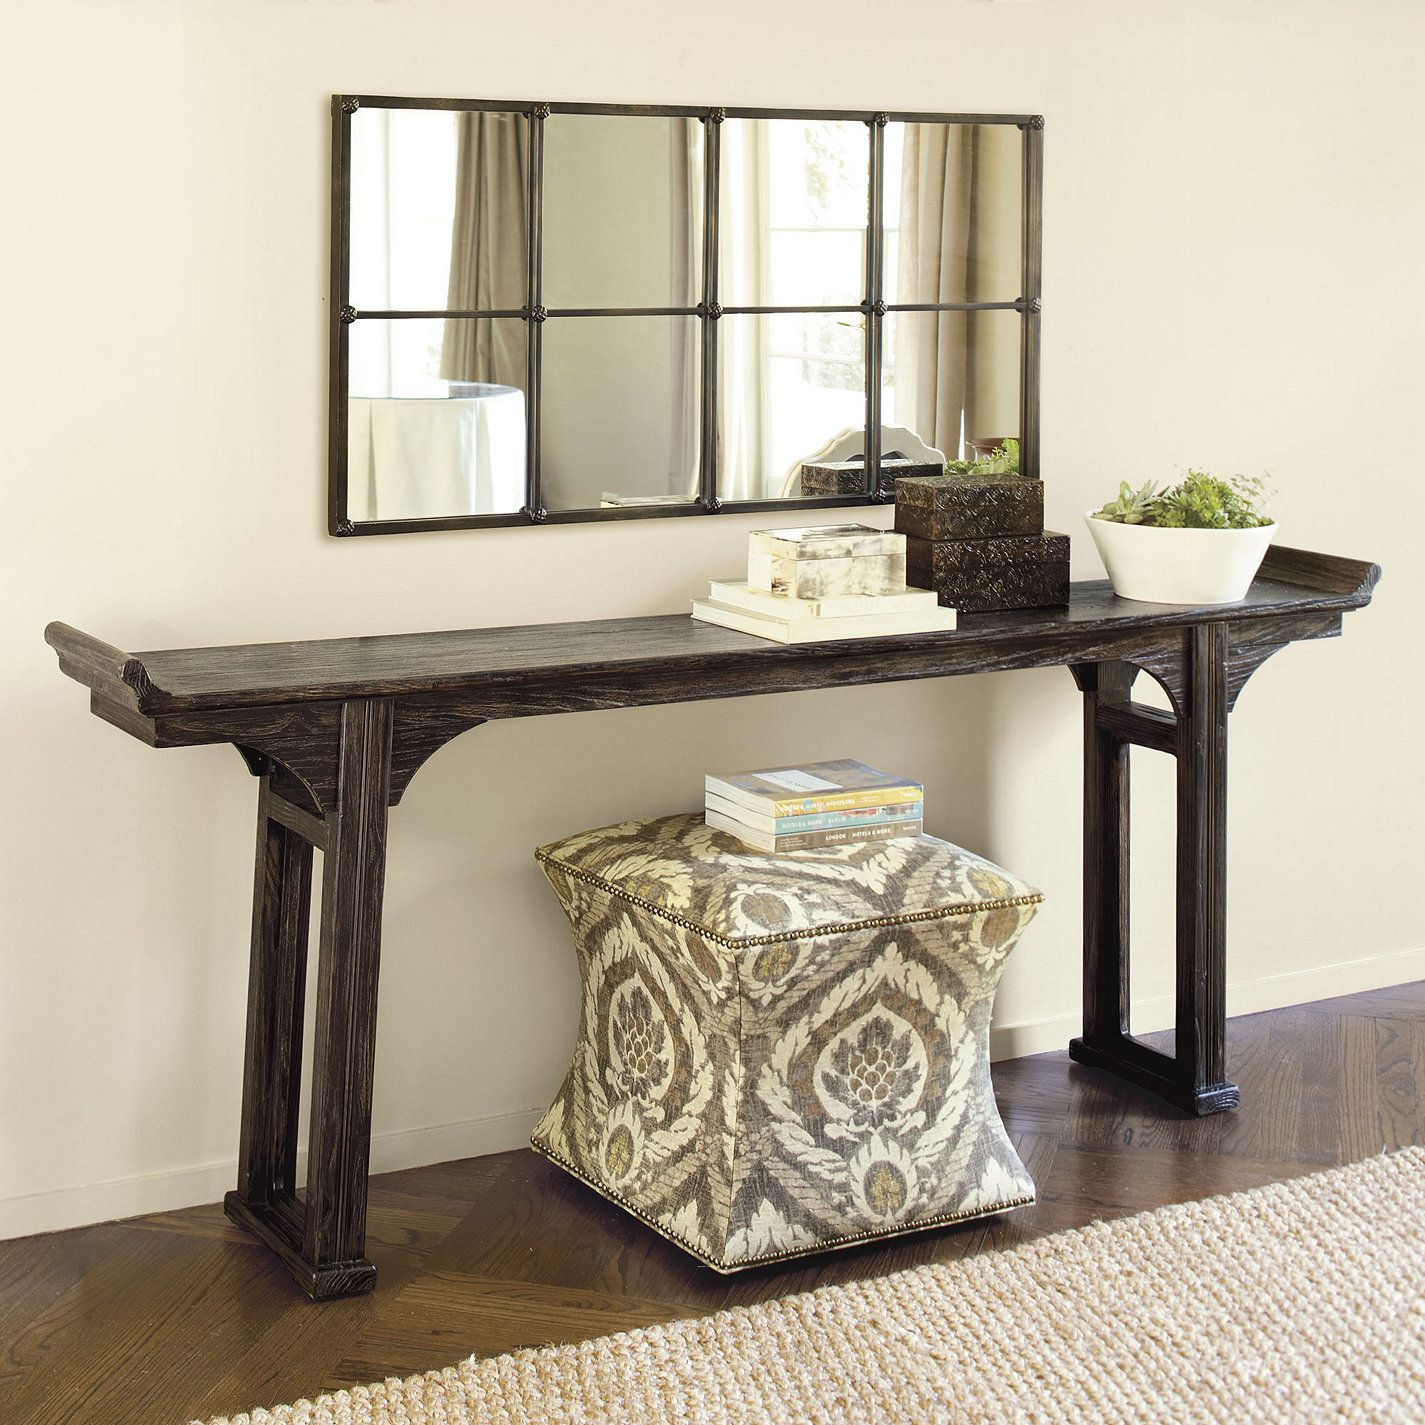 Ananda Serving Table Rustic Black Serving Table Wood Serving Table Long Sofa Table Family Room Design Sofa Table Decor